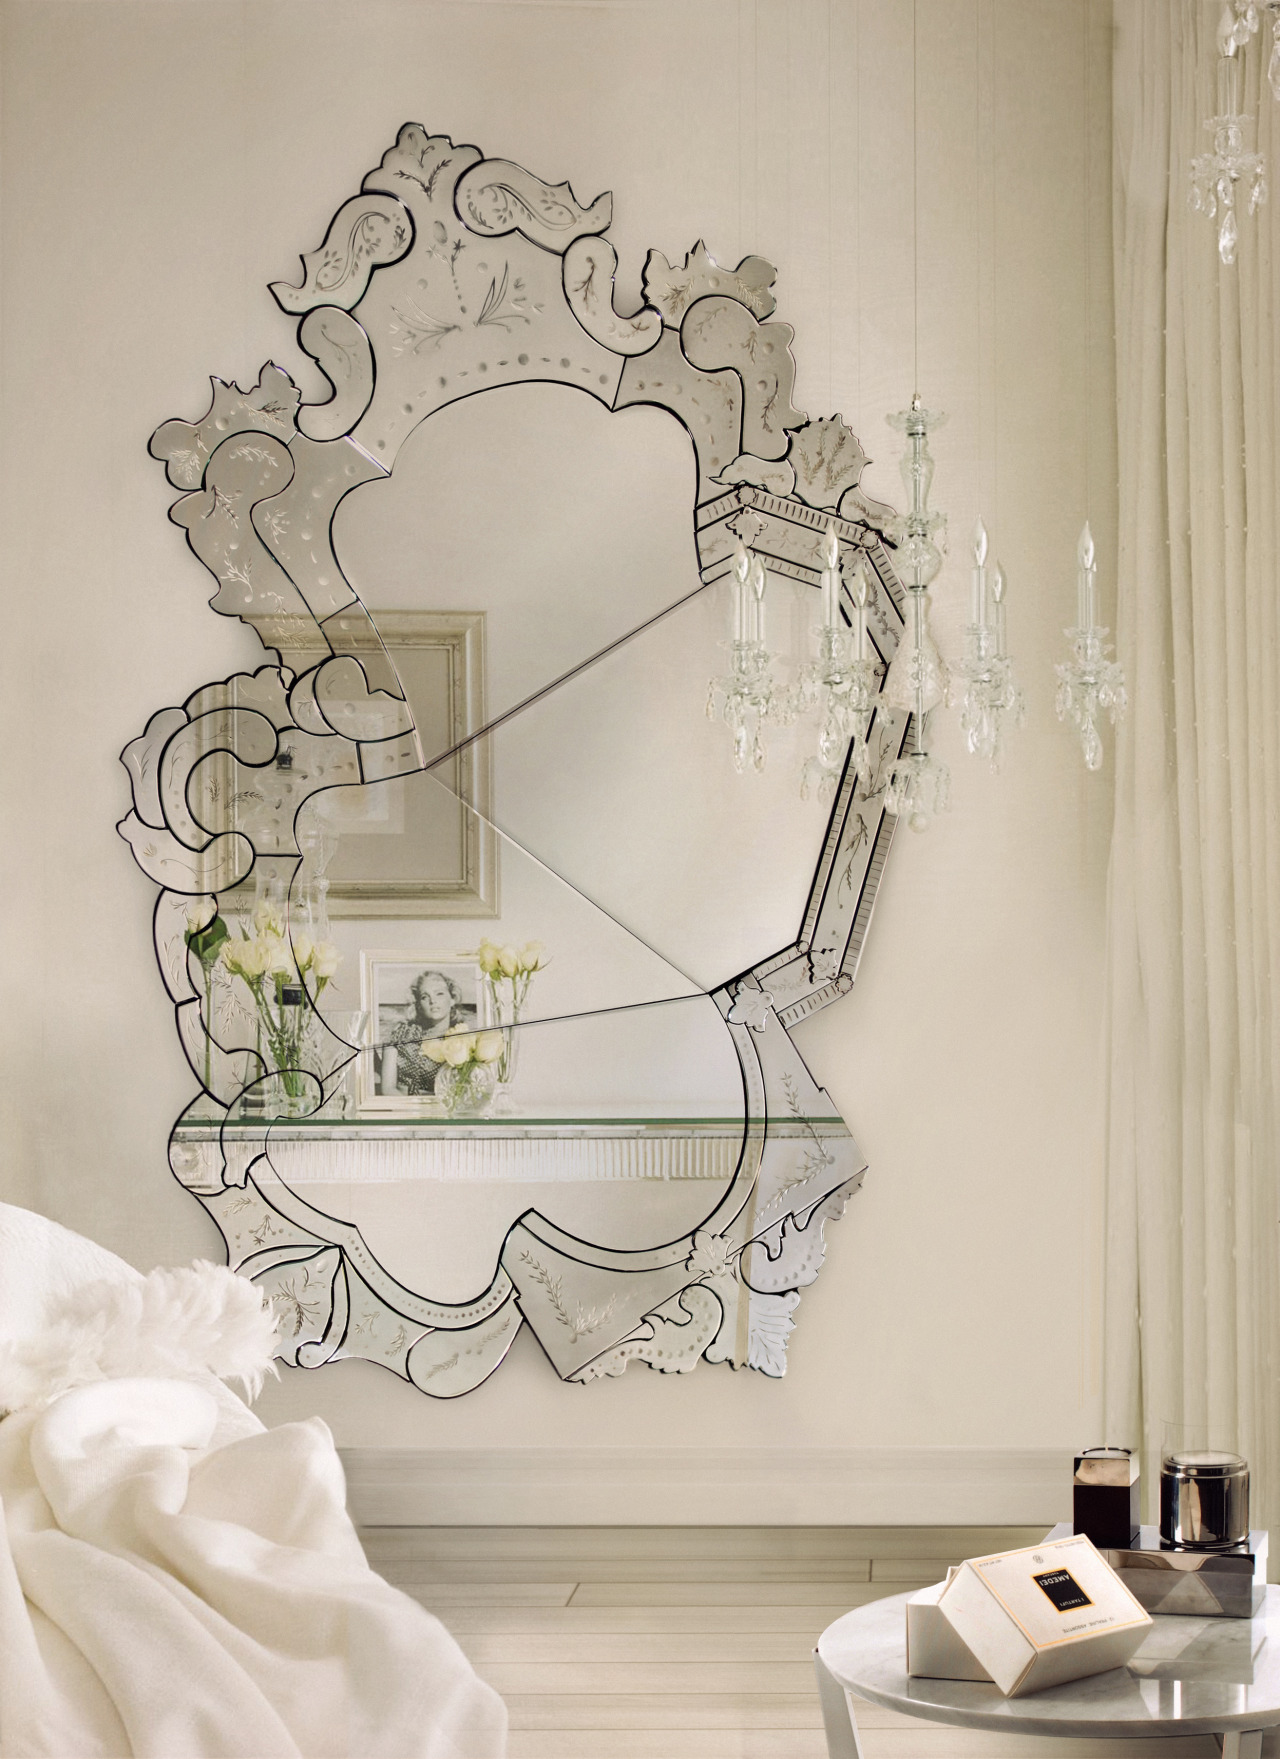 Fashioned Living Room Furniture: The Most Beautiful Wall Mirror Designs For Your Living Room